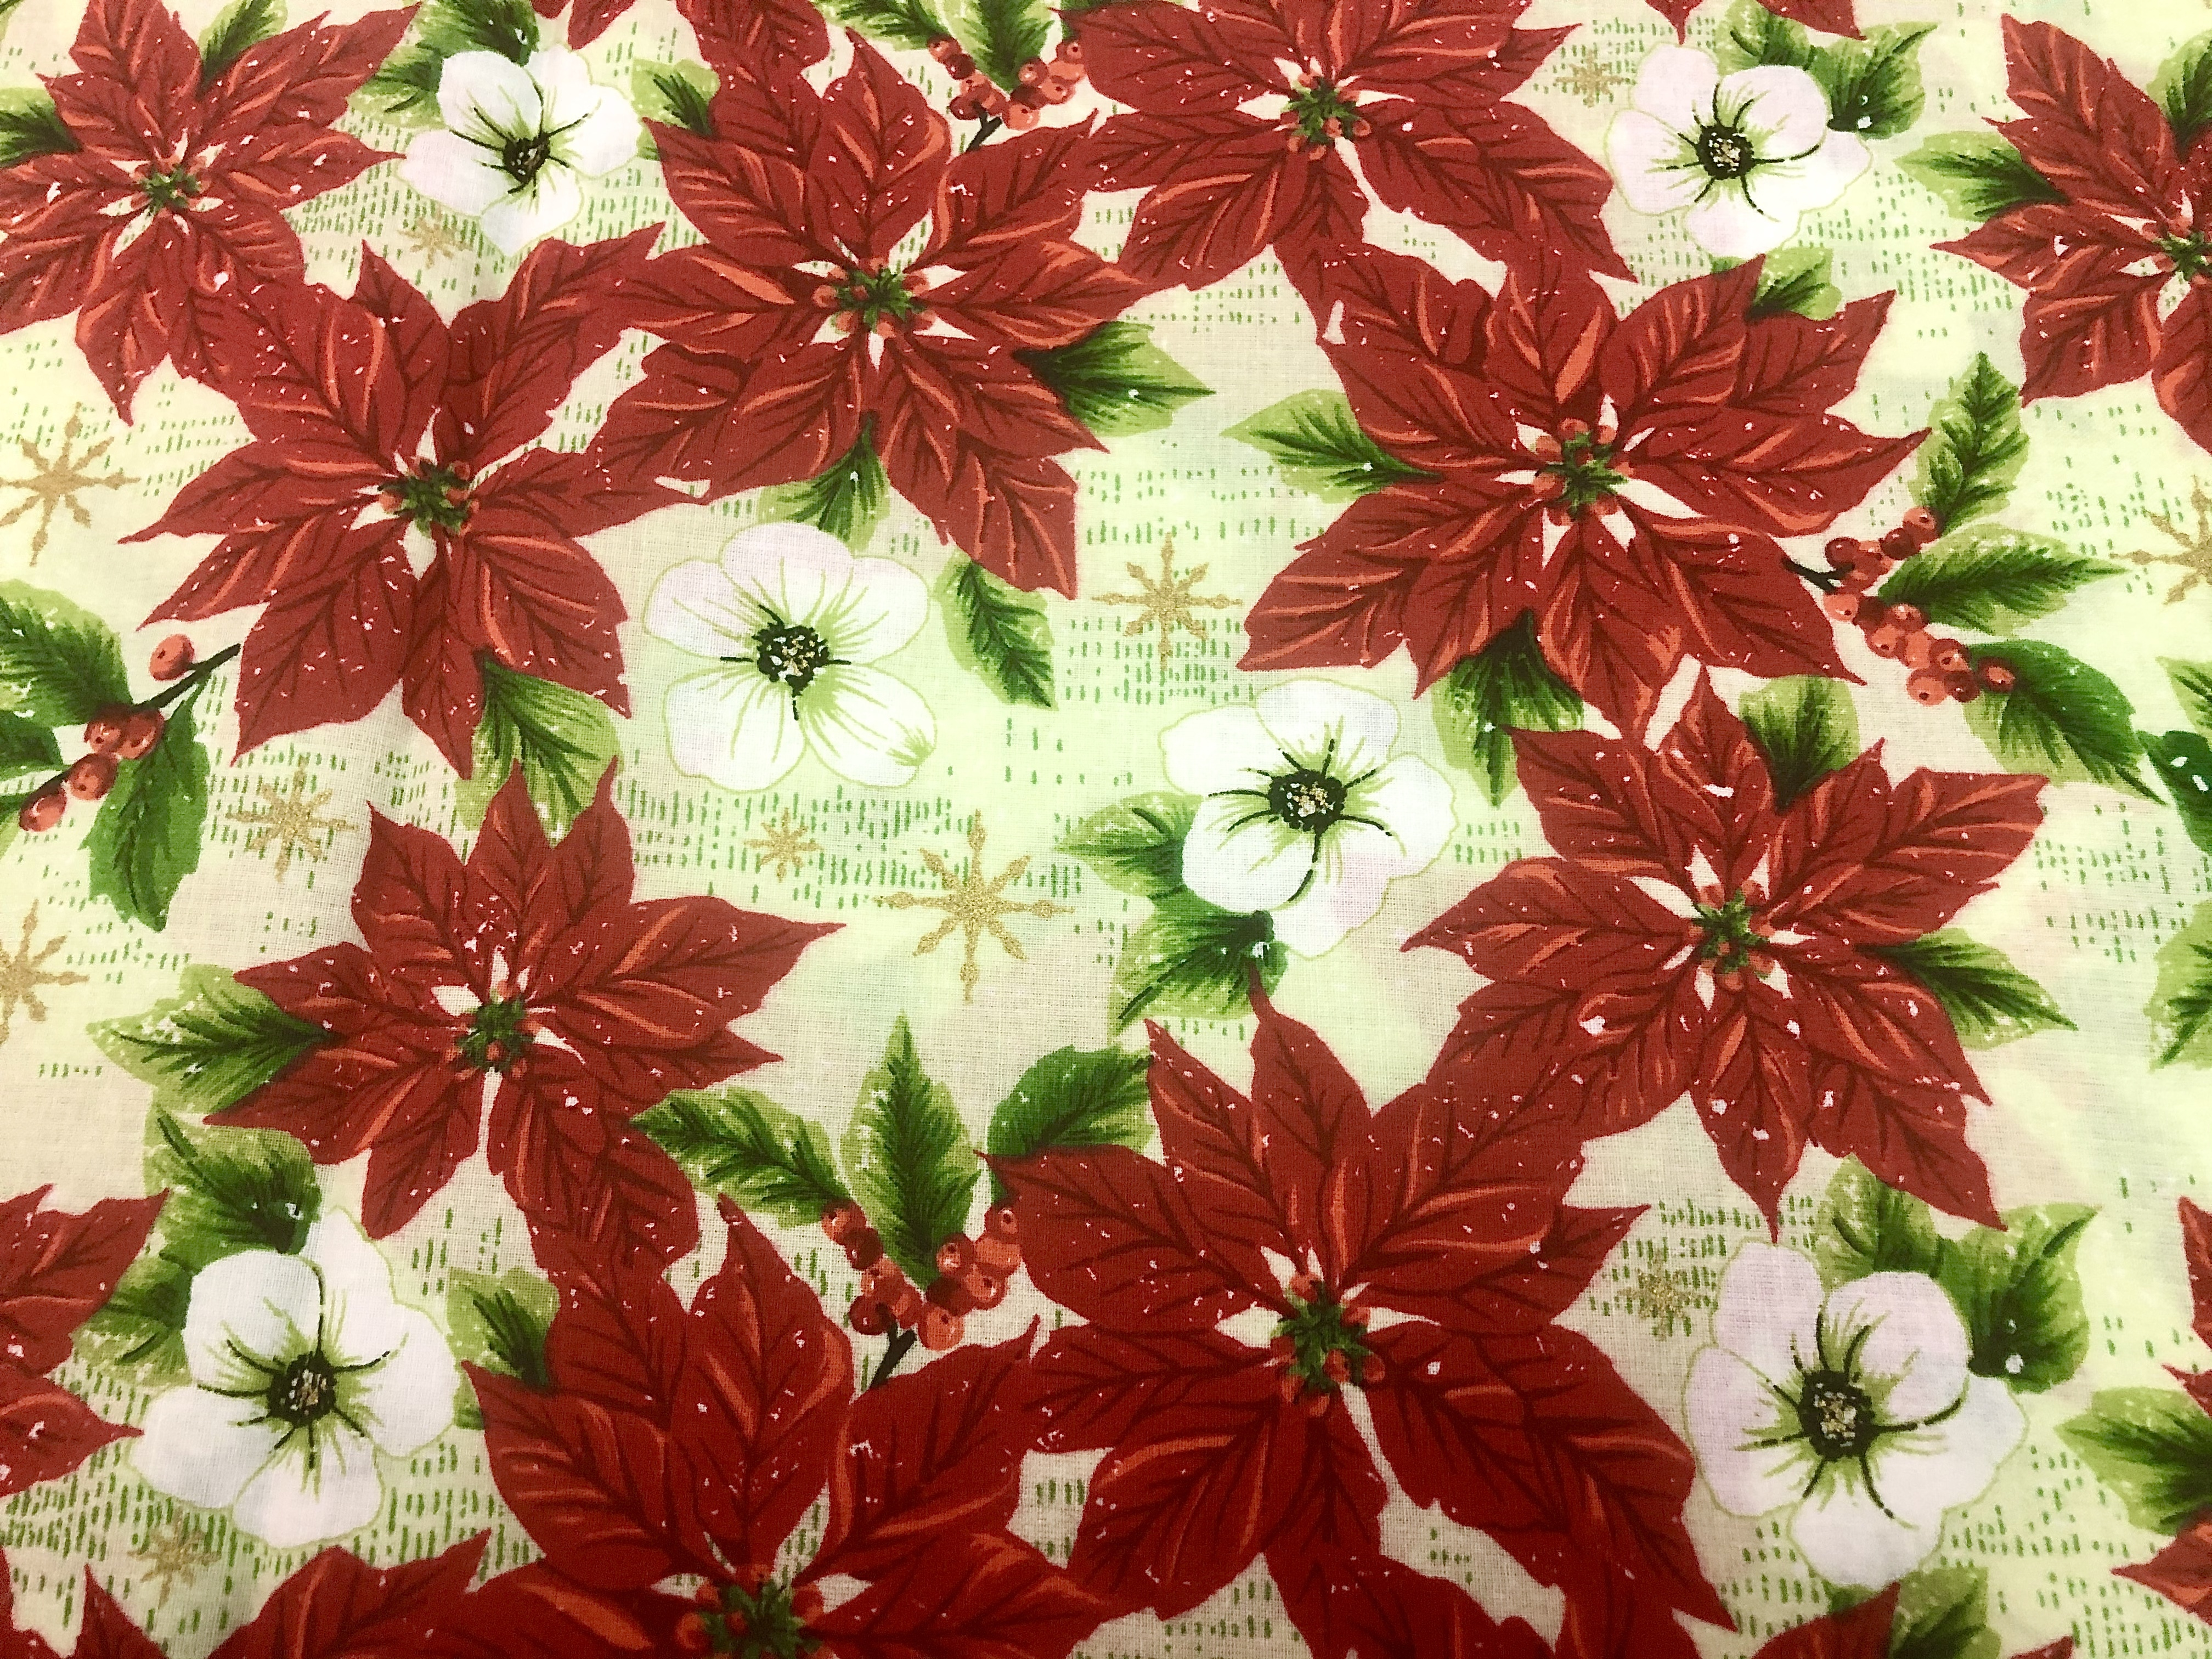 Merry Christmas Metallics - Red and White Poinsettias - 1/2m cut 56383